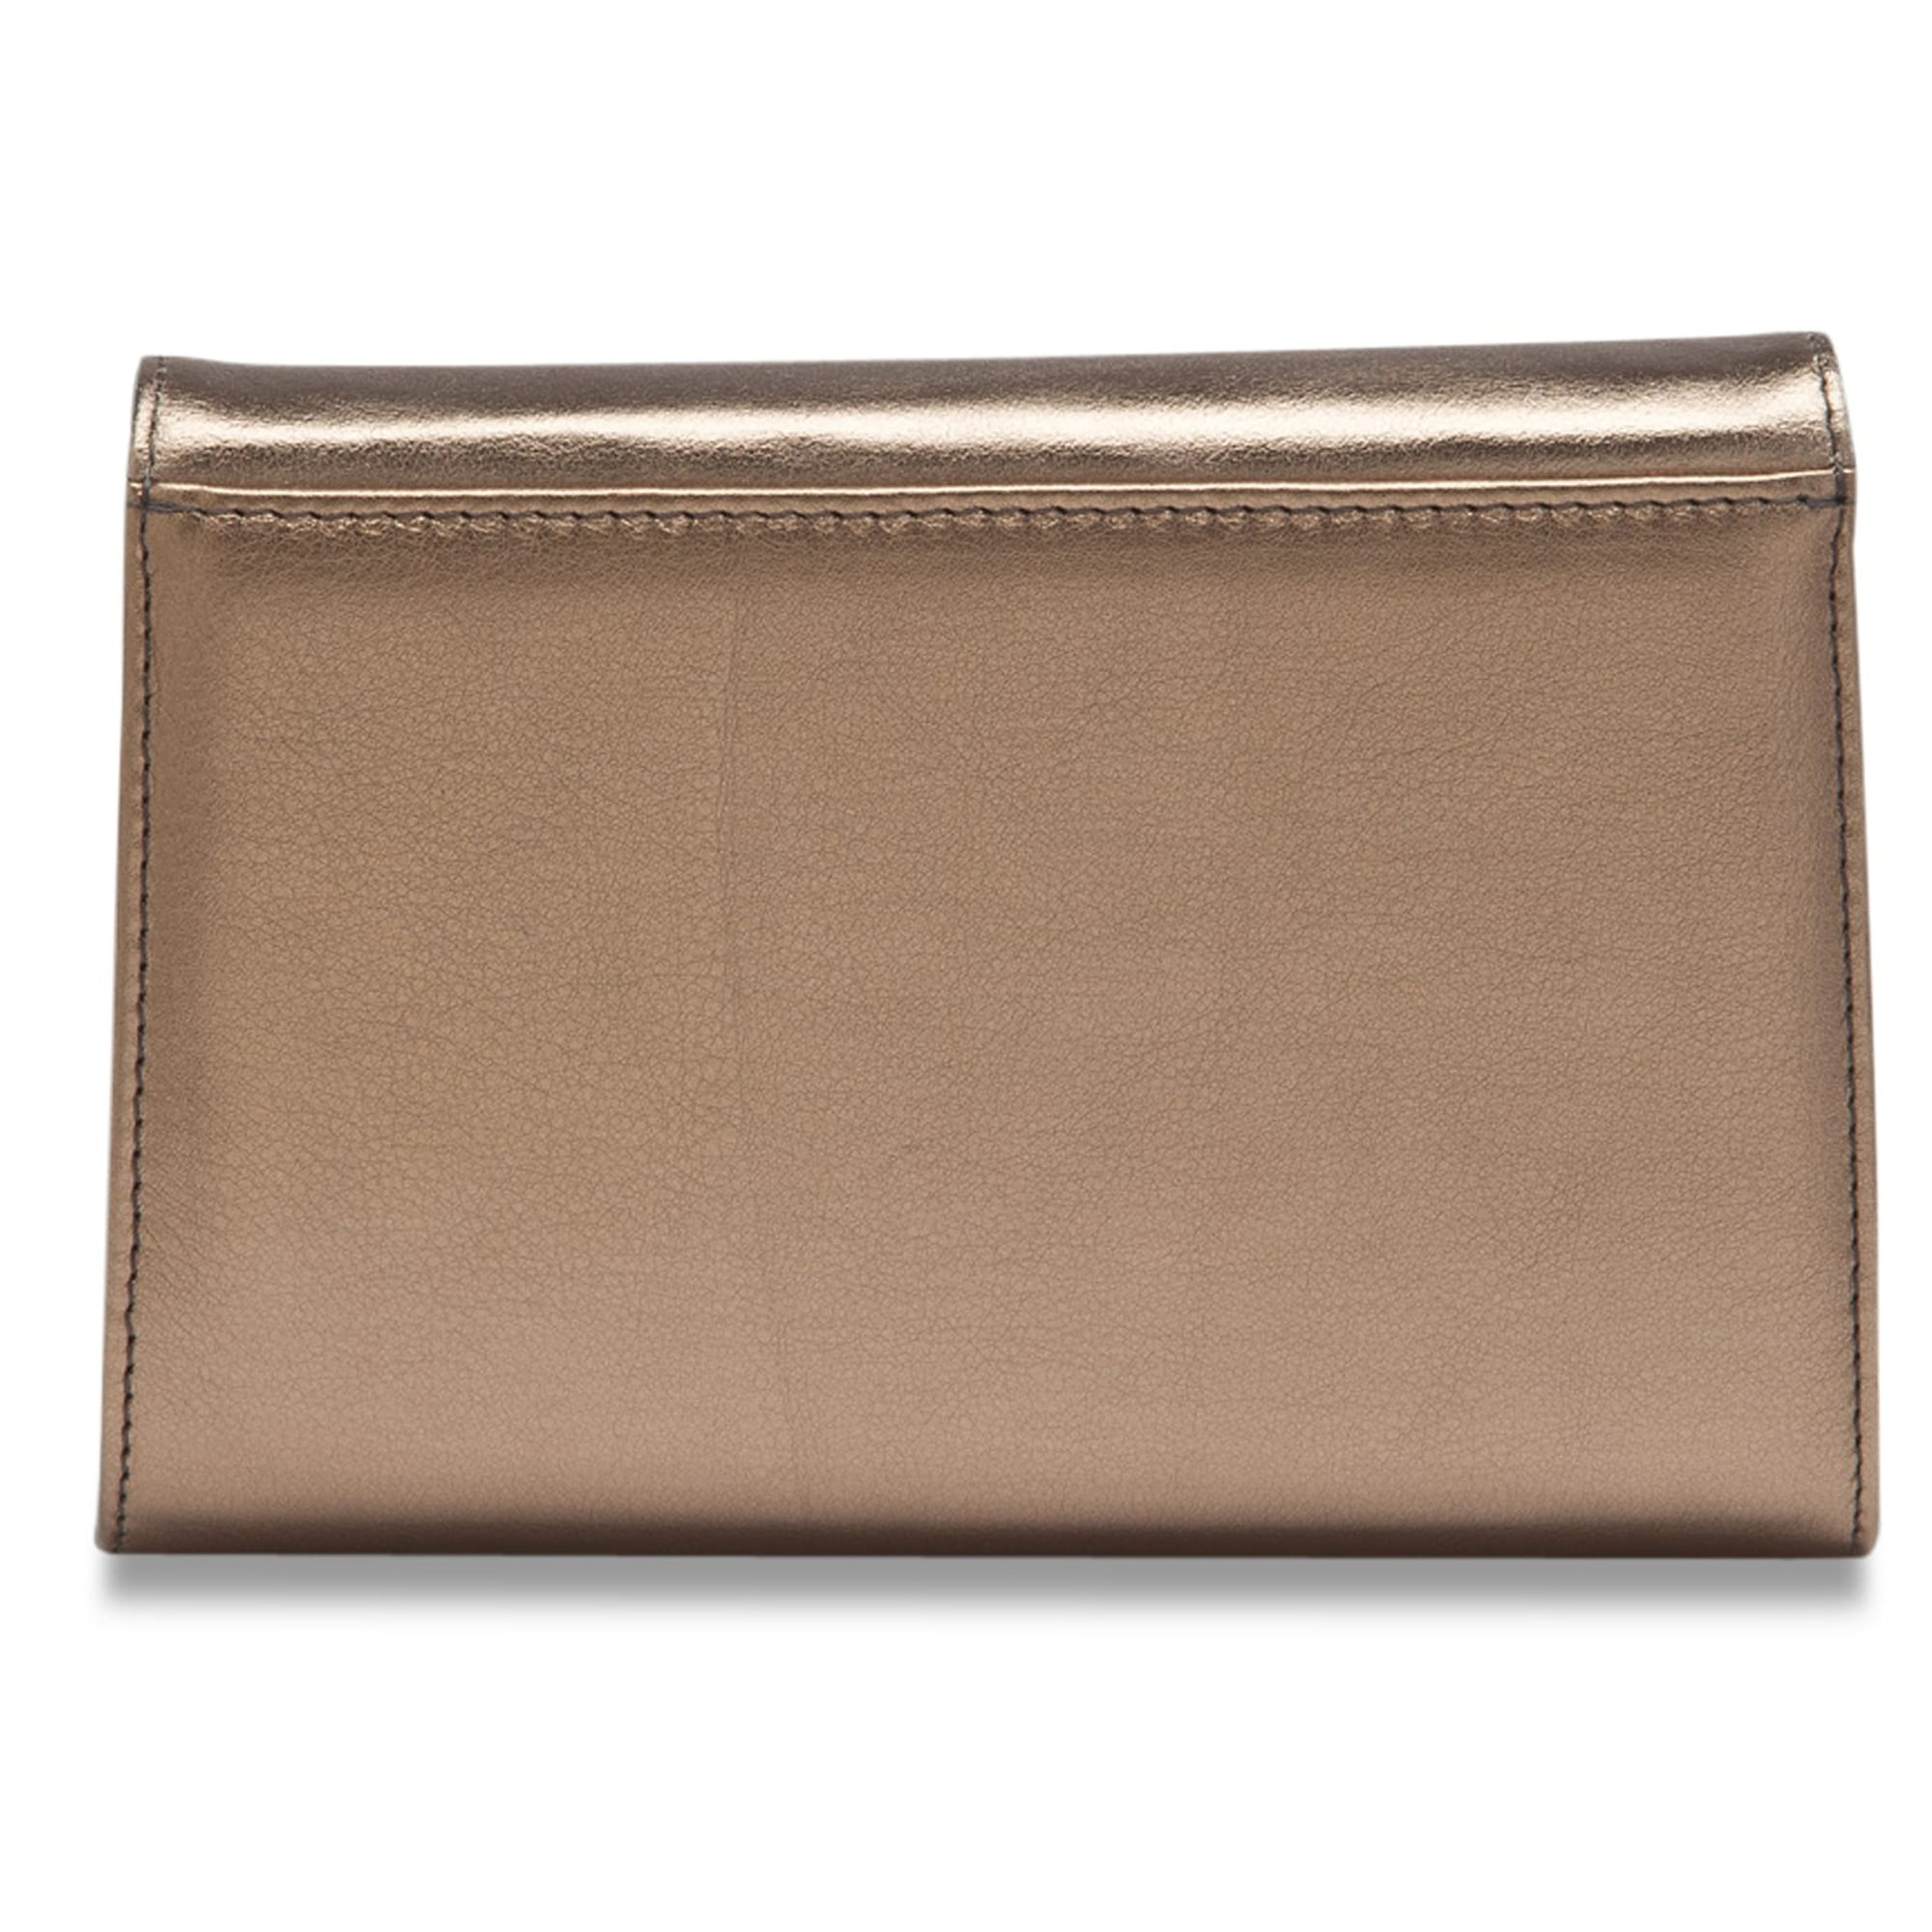 Picard, Dames Clutch, nude